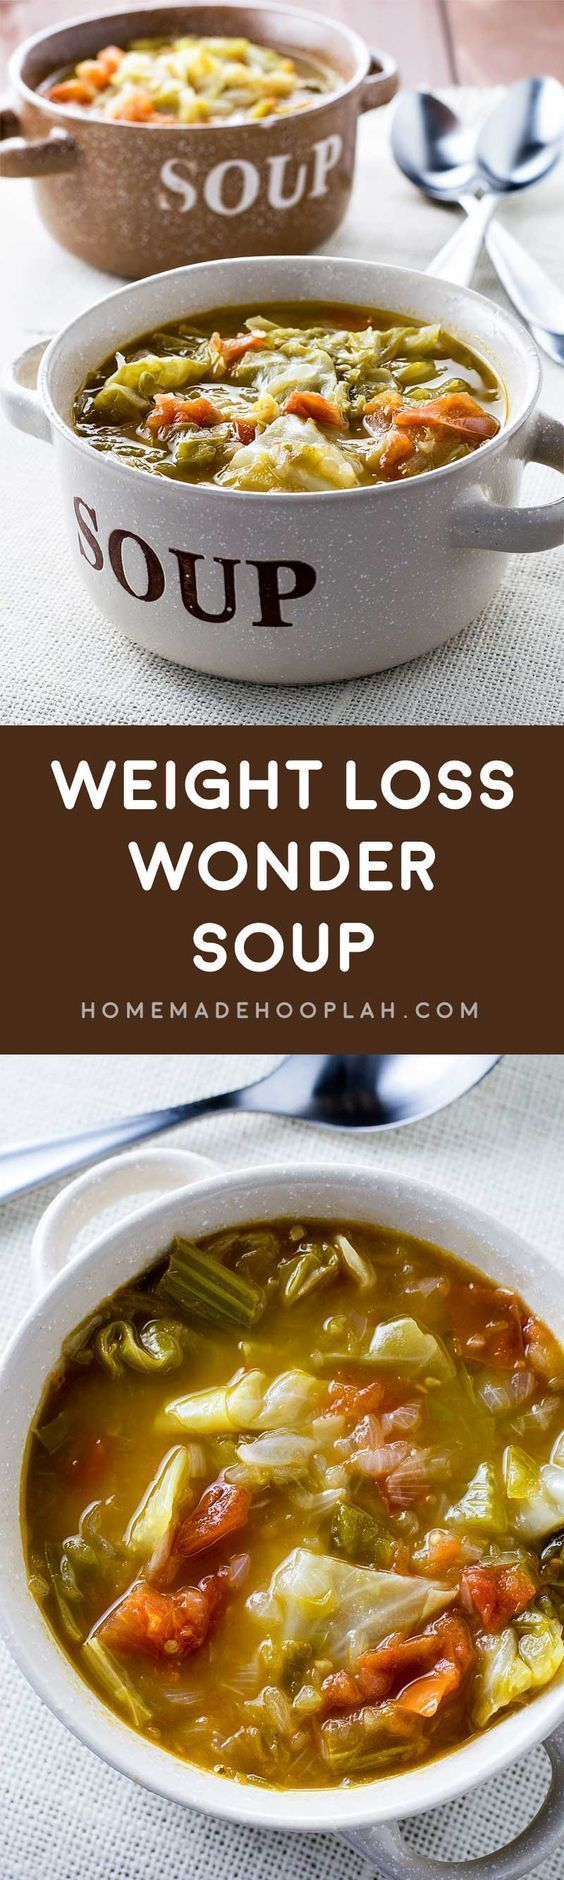 Weight Loss Wonder Soup! A filling and healthy wonder soup to assist with any diet. Vegetarian, gluten free, vegan, paleo - this combination of cooked veggies will leave you filling full enough to get past the hunger pangs. | http://HomemadeHooplah.com